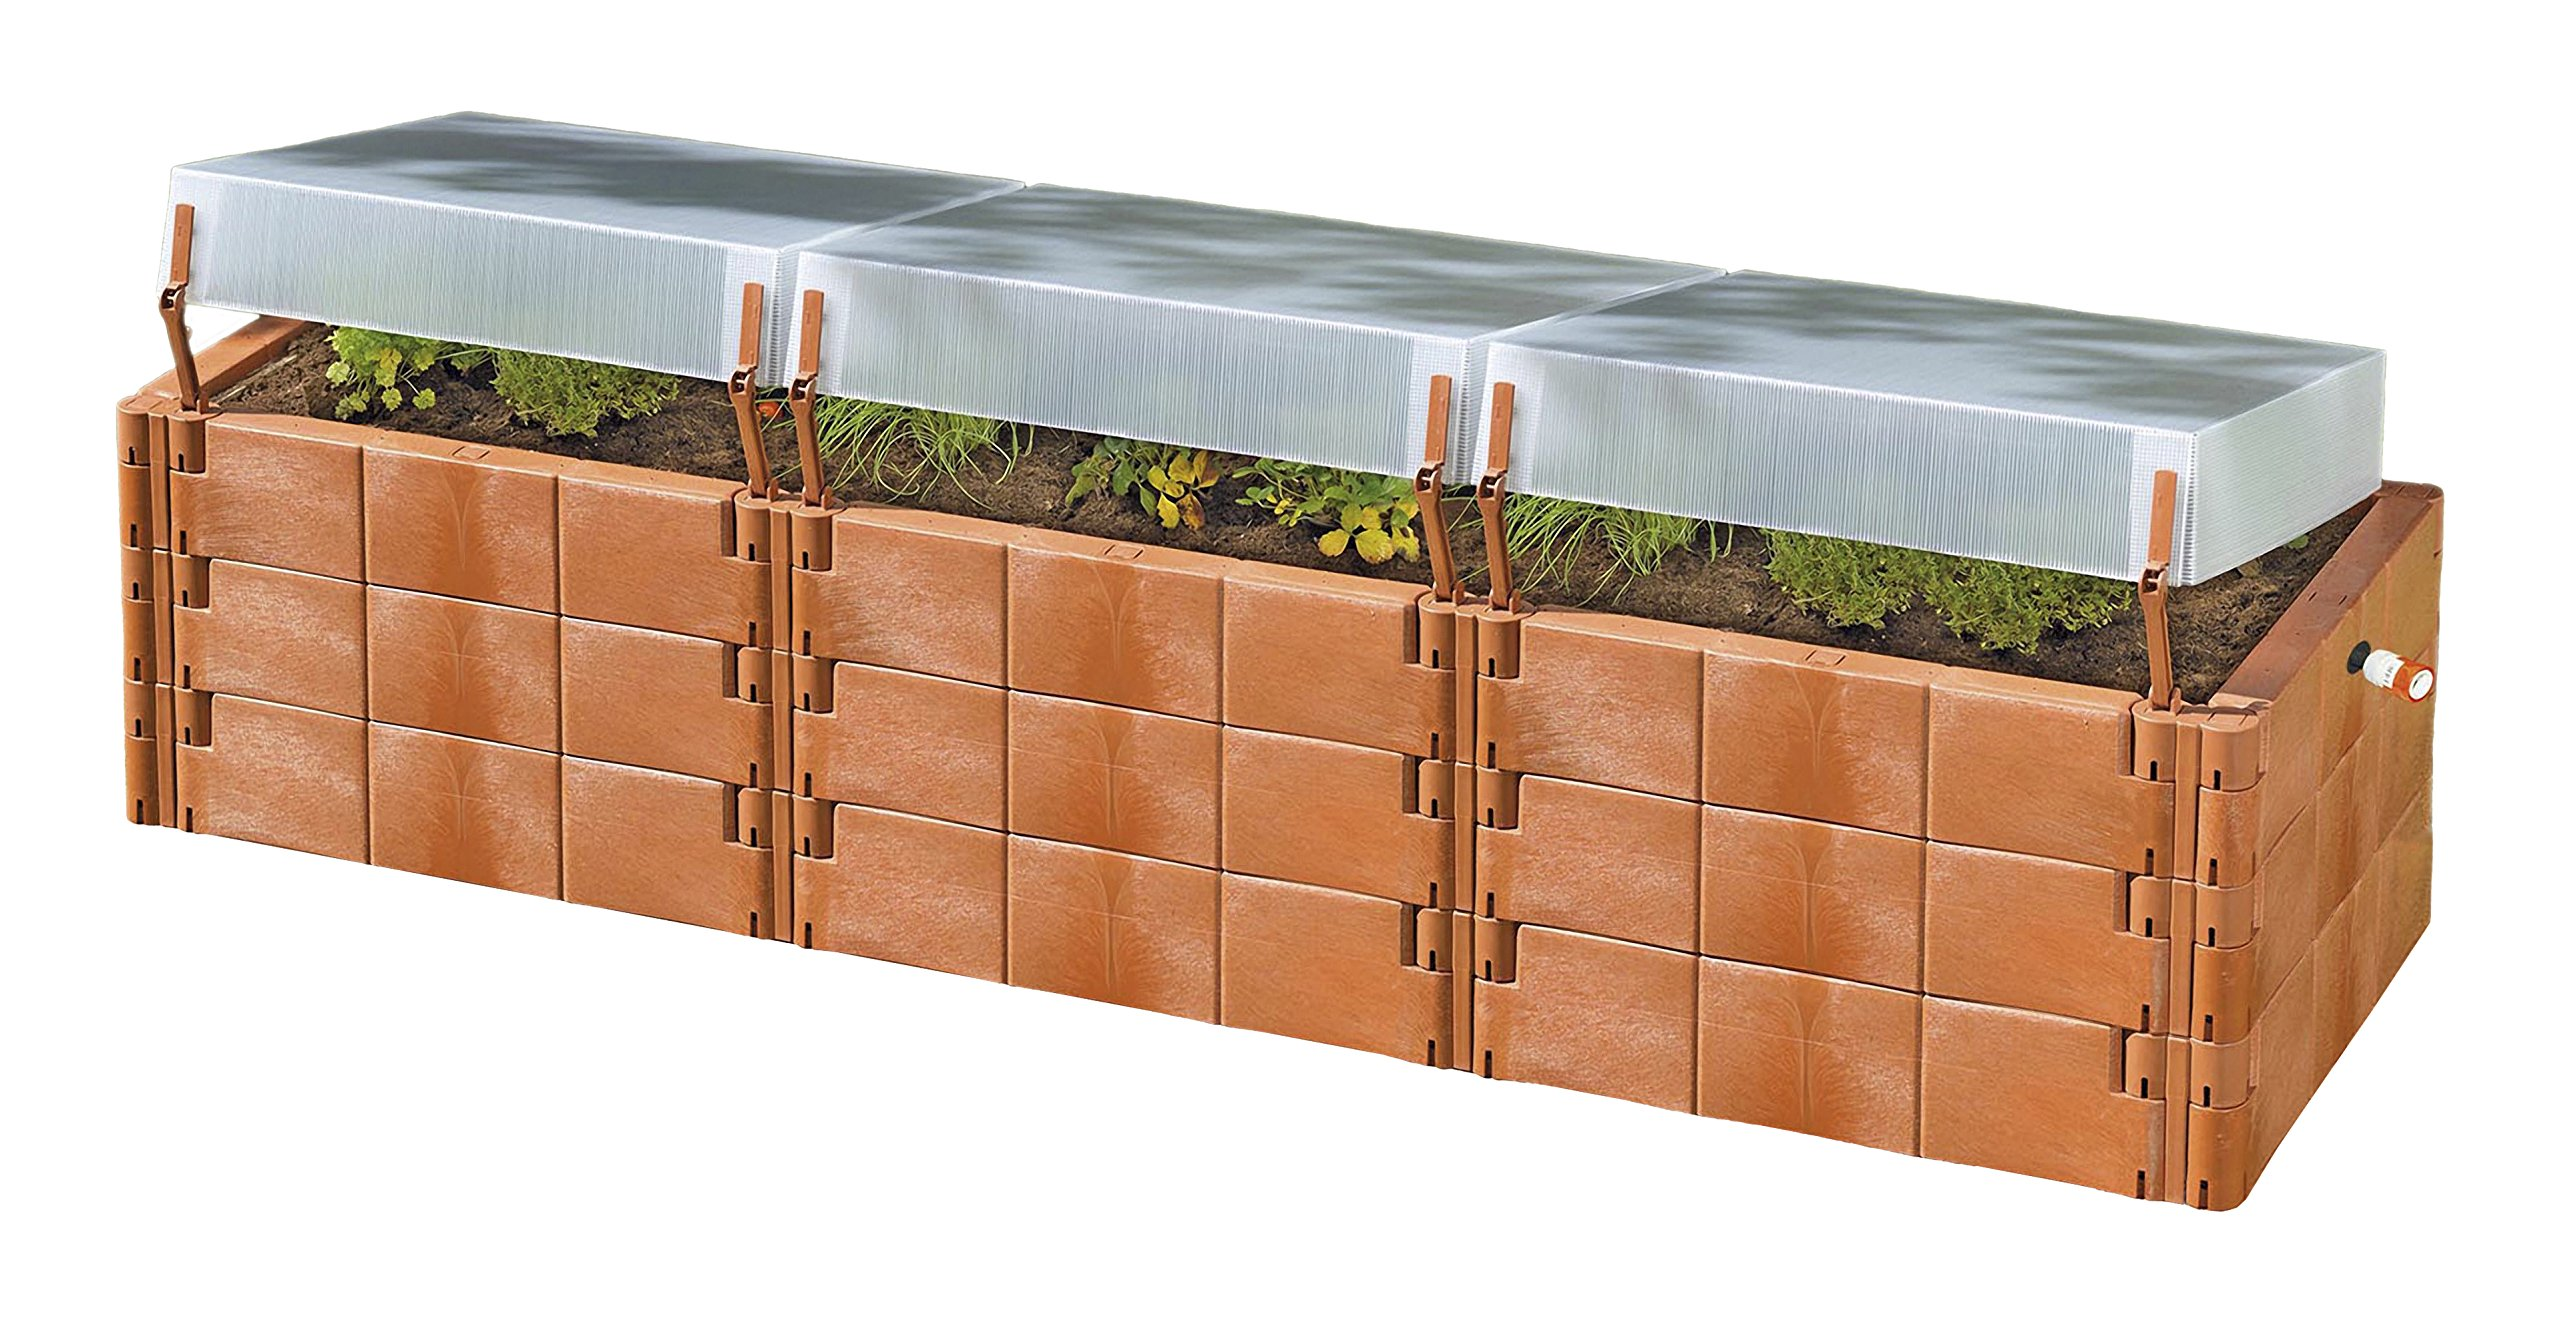 Exaco Trading Company Triple Box 20374 Raised Bed with Cold-Frame by Exaco Trading Company